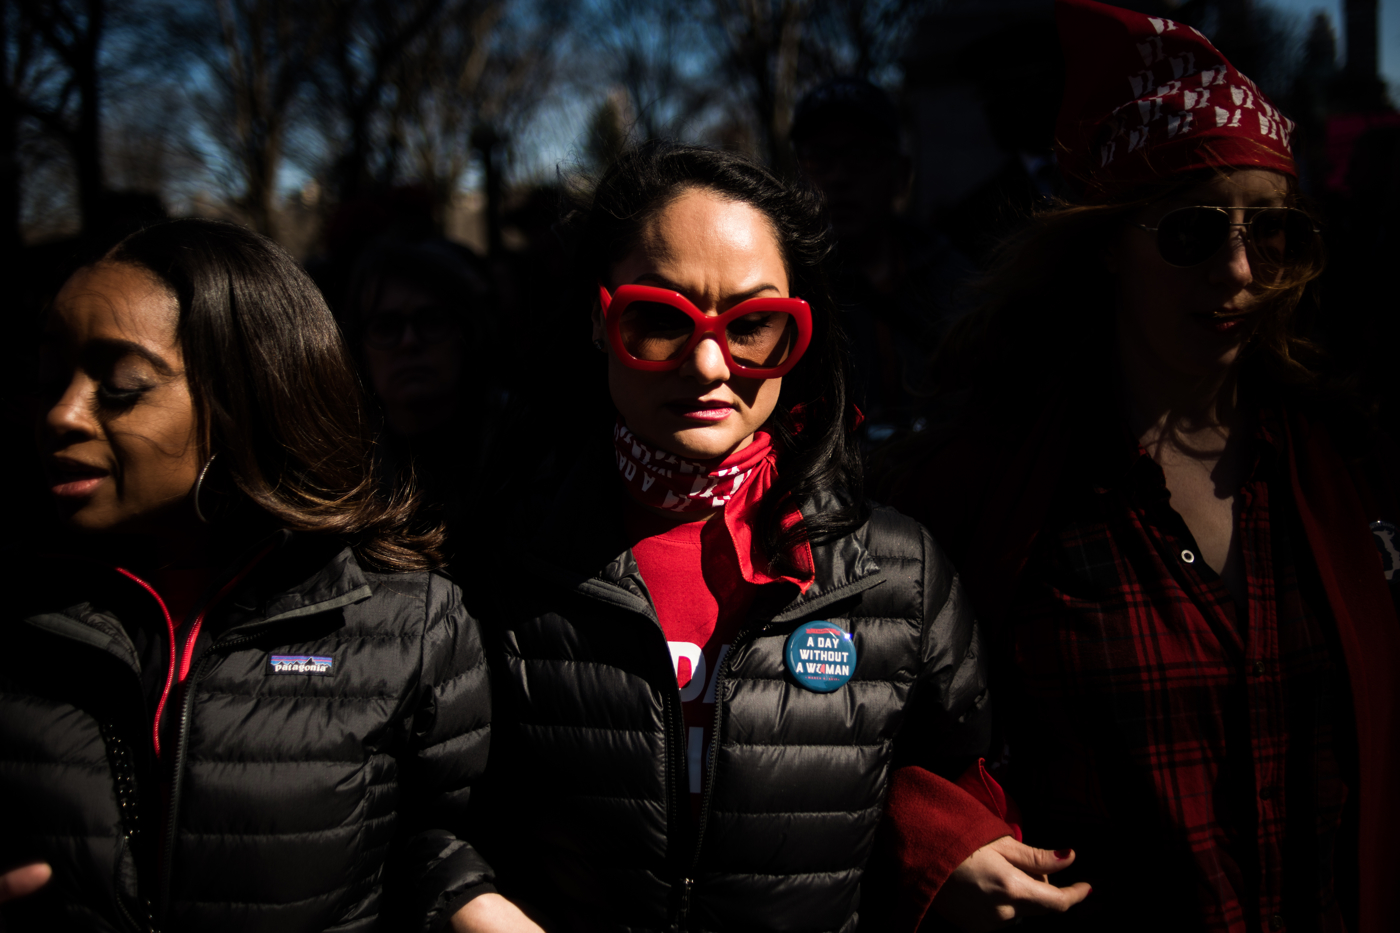 Carmen Perez, national co-chair for the Women's March, walks down 59th Street during an International Women's Day rally and march in New York, NY on March 8, 2017. CREDIT: Mark Kauzlarich for CNN